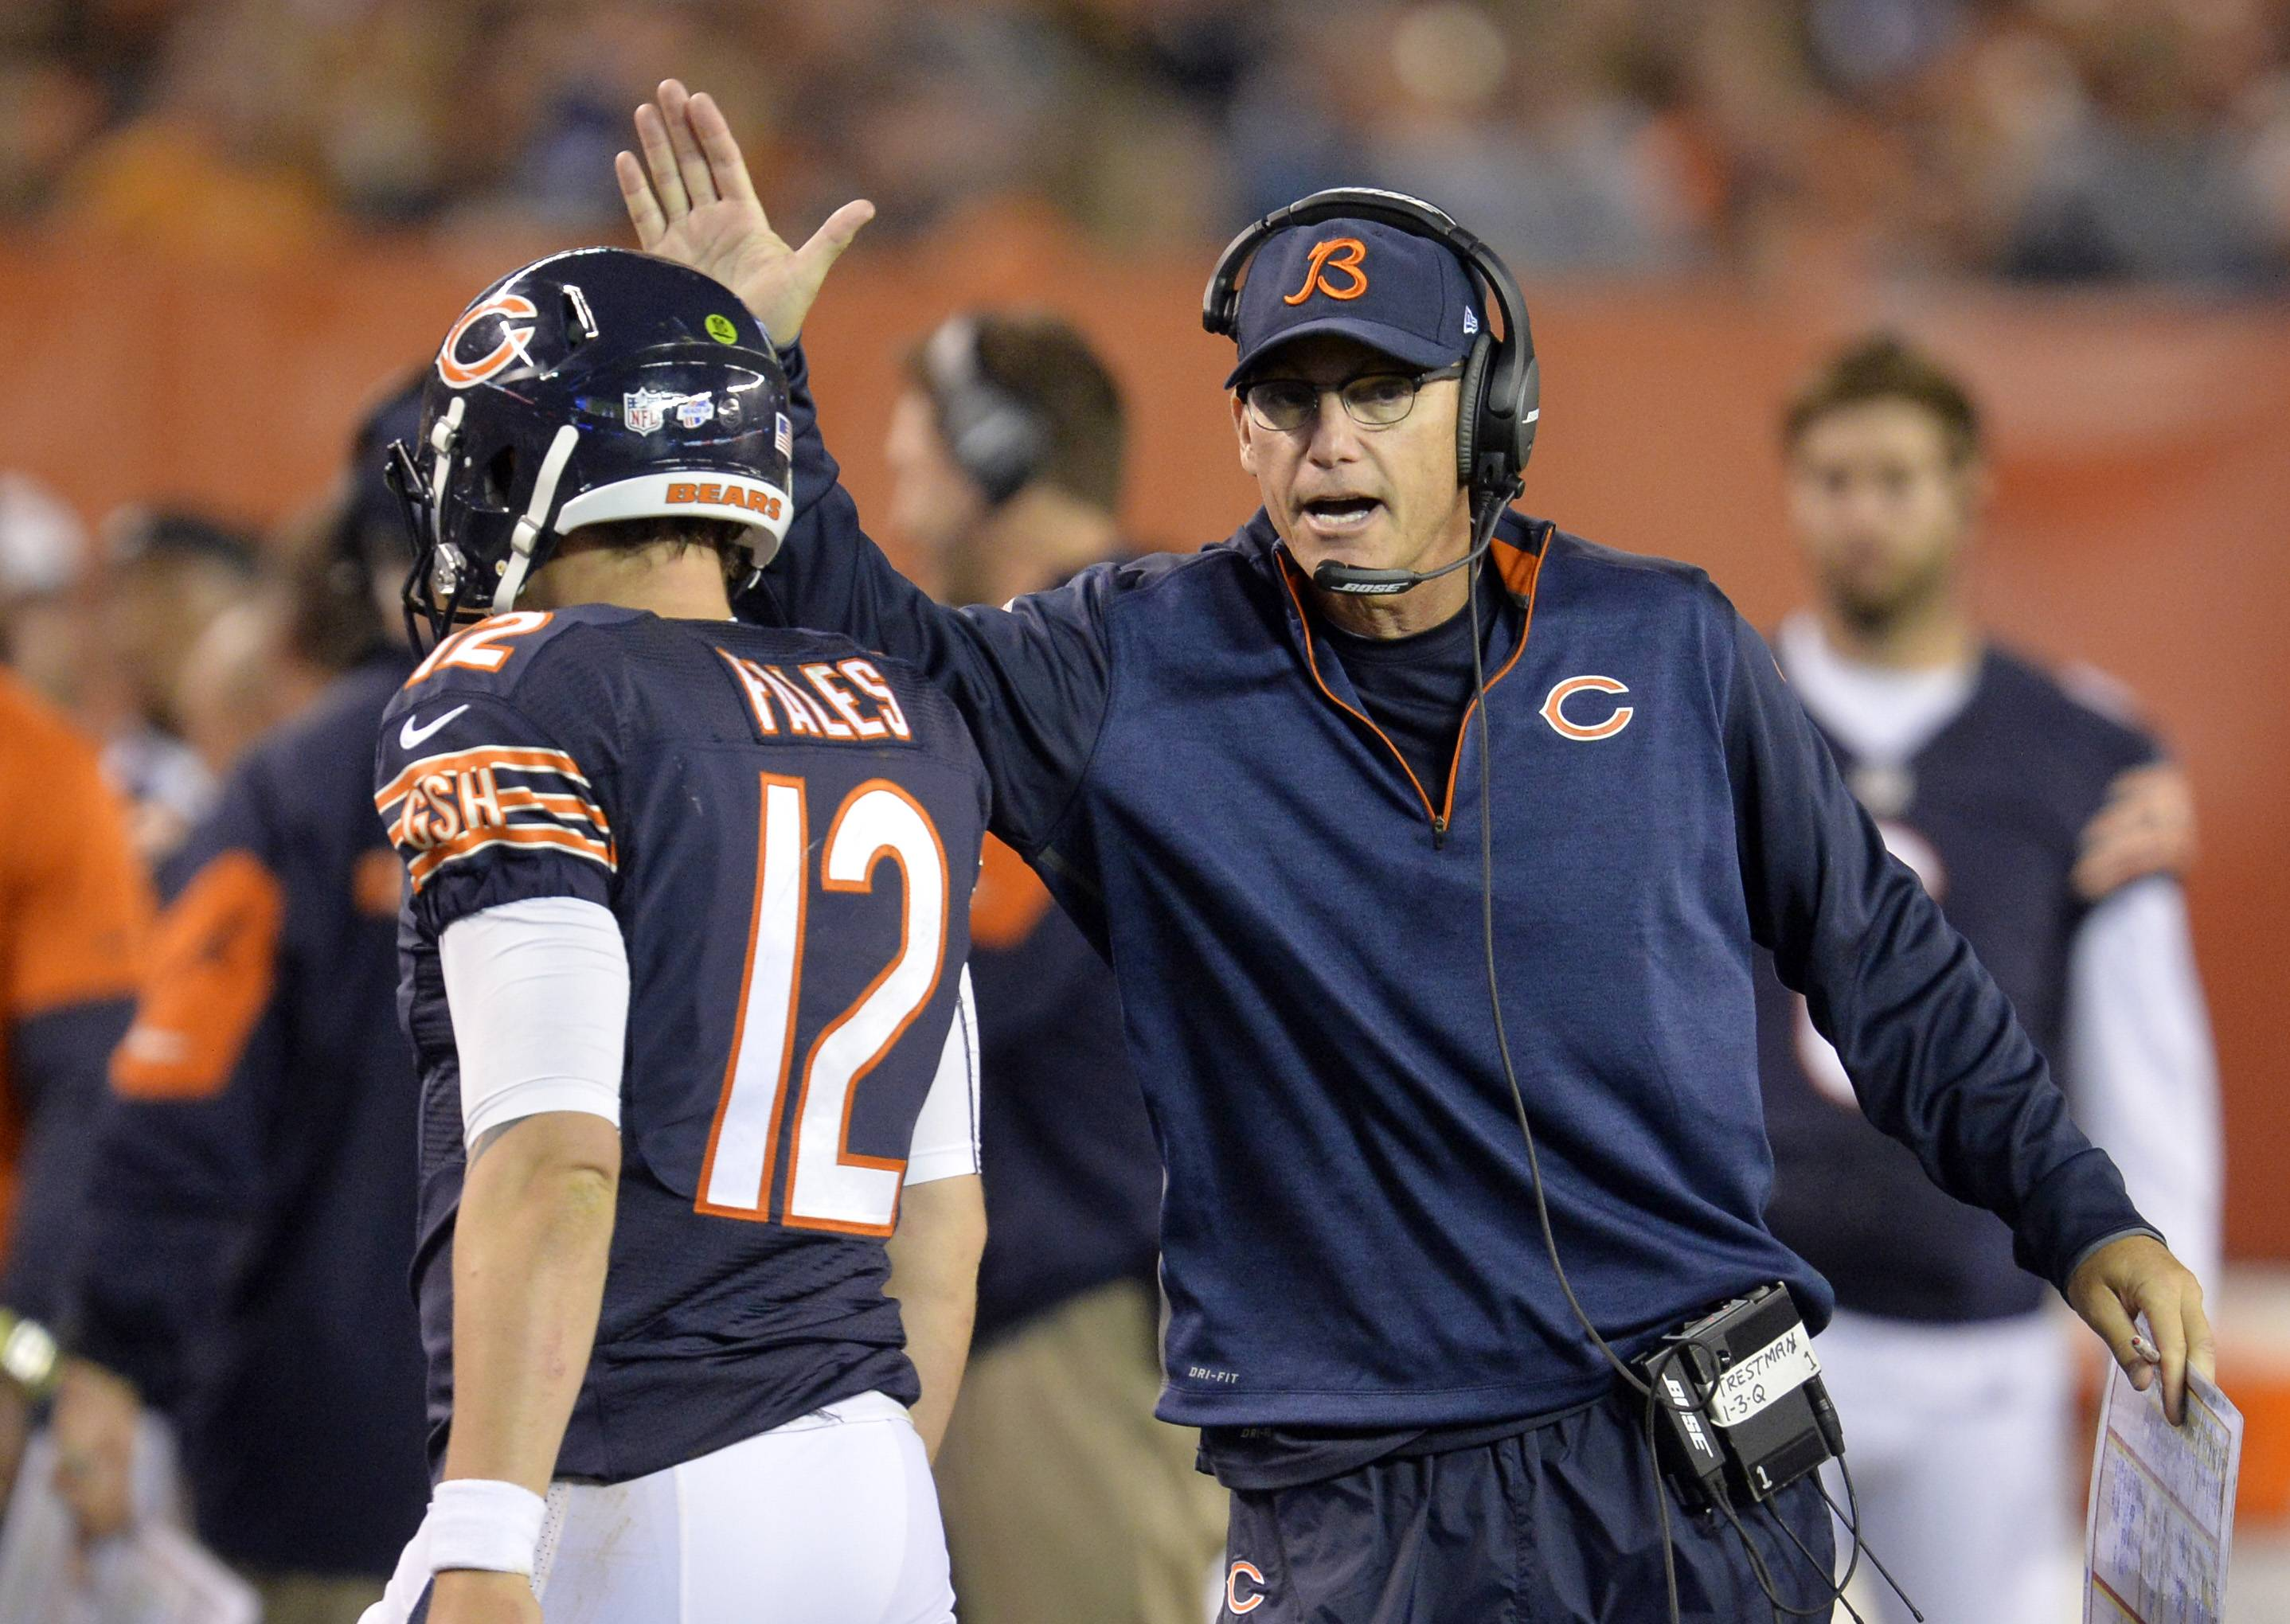 Chicago Bears head coach Marc Trestman congratulates quarterback David Fales (12) after a 32-yard touchdown pass against the Cleveland Browns in the second quarter of a preseason NFL football game Thursday, Aug. 28, 2014, in Cleveland.